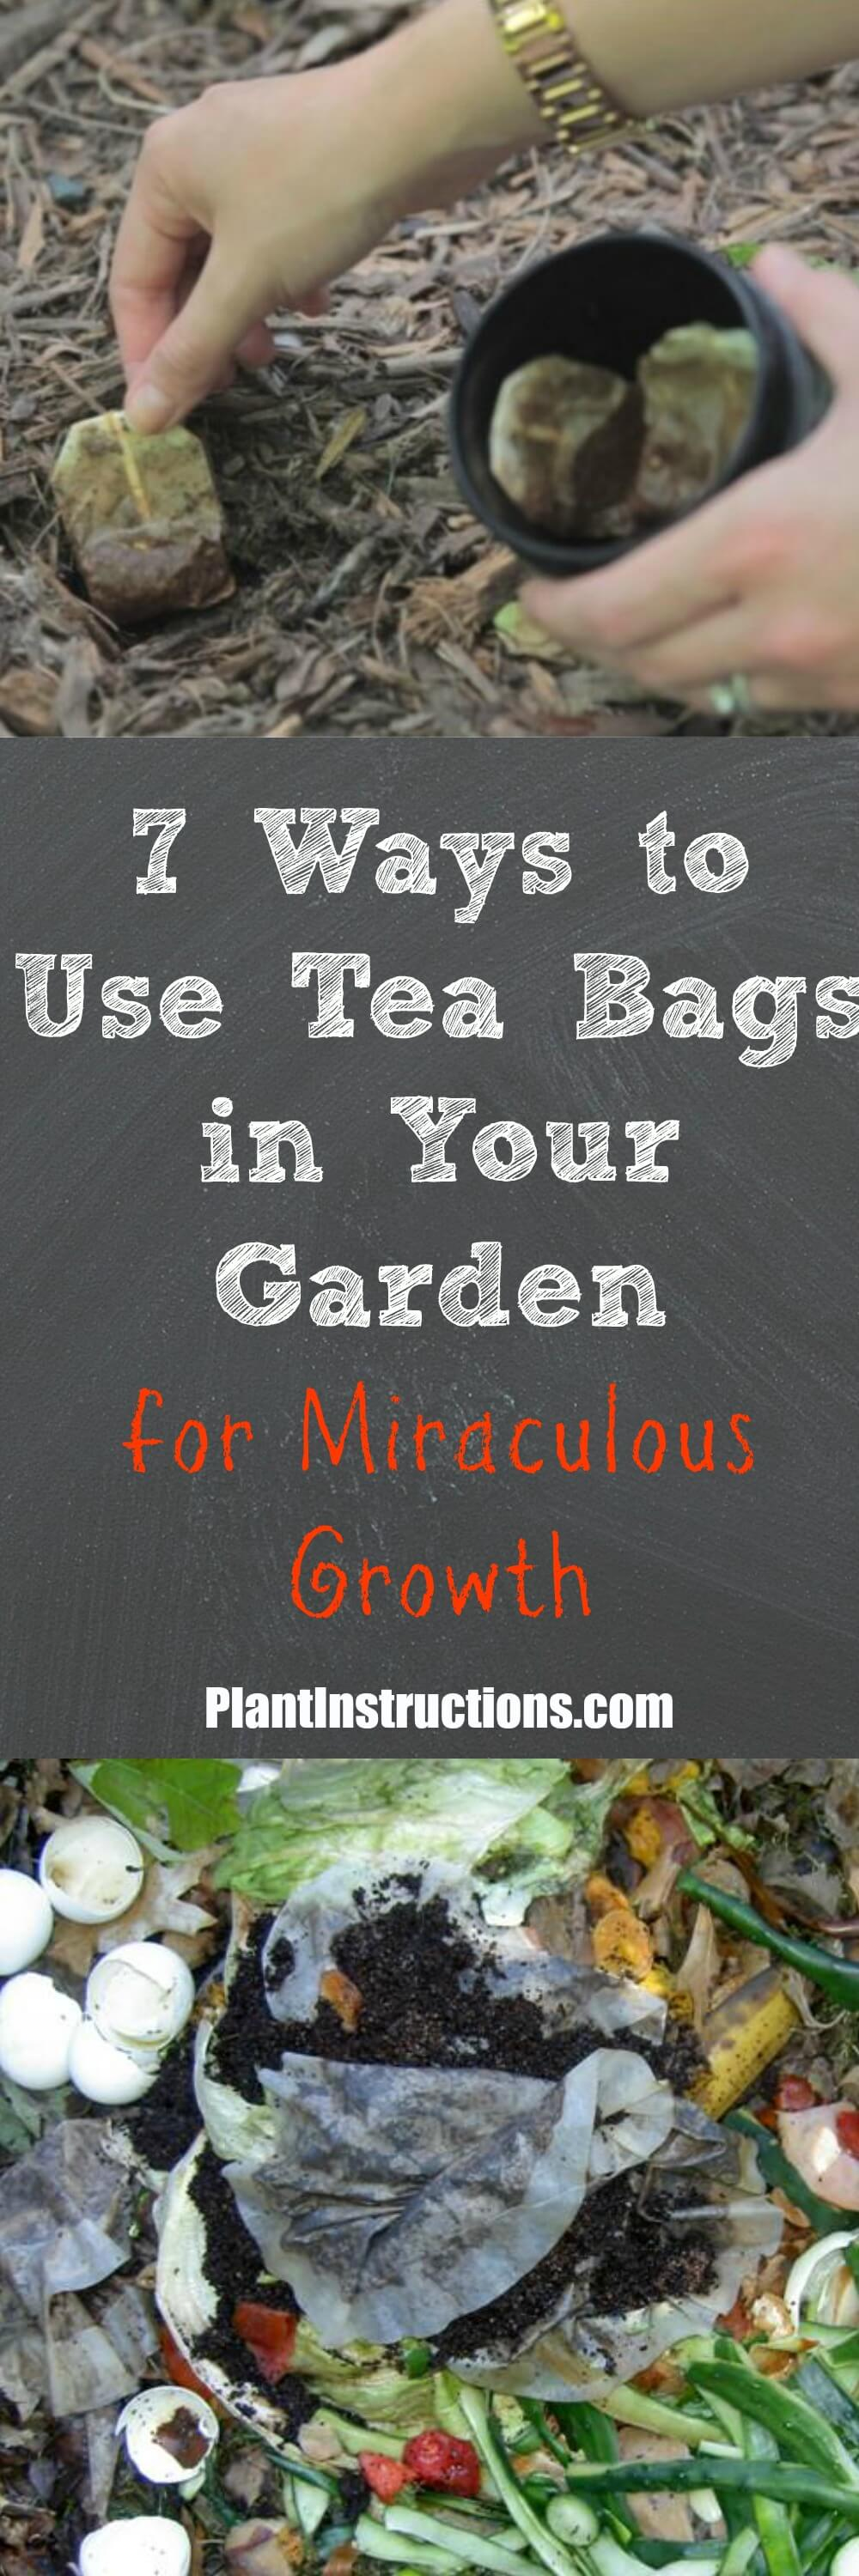 Tea bags should NEVER be thrown out! Instead, put them to good use in your garden!